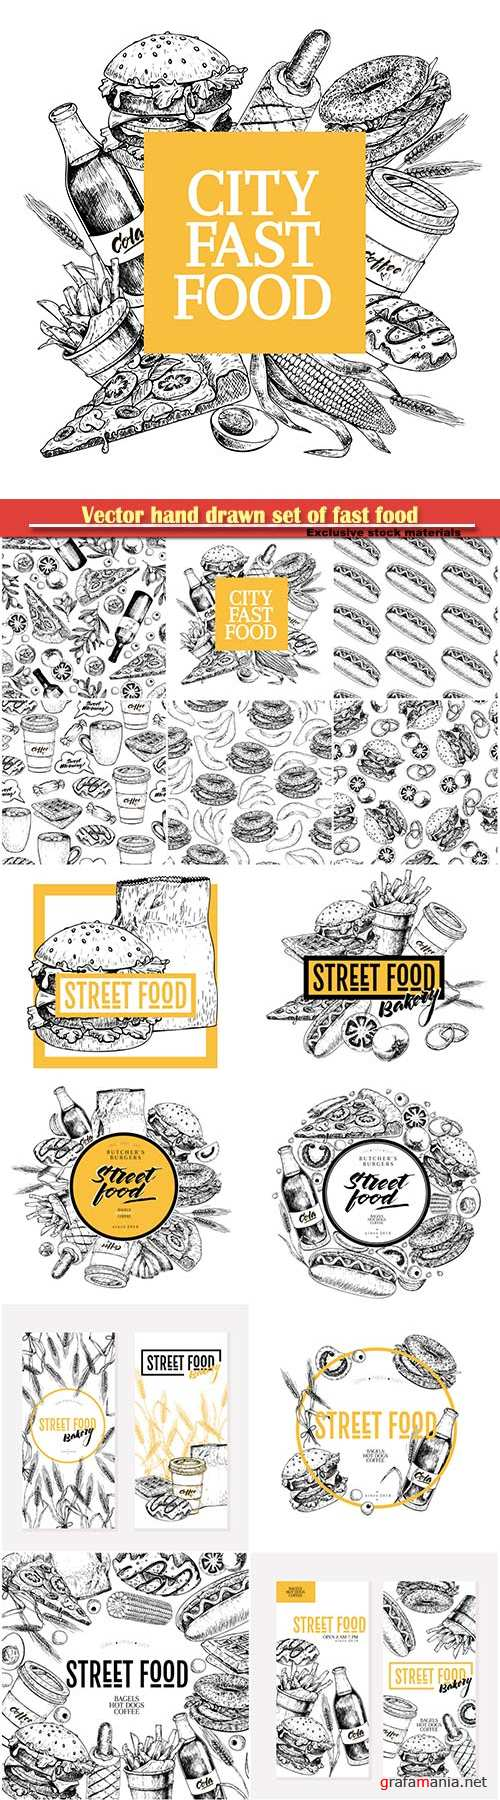 Vector hand drawn set of fast food, for restaurant, menu, street food, bakery, cafe